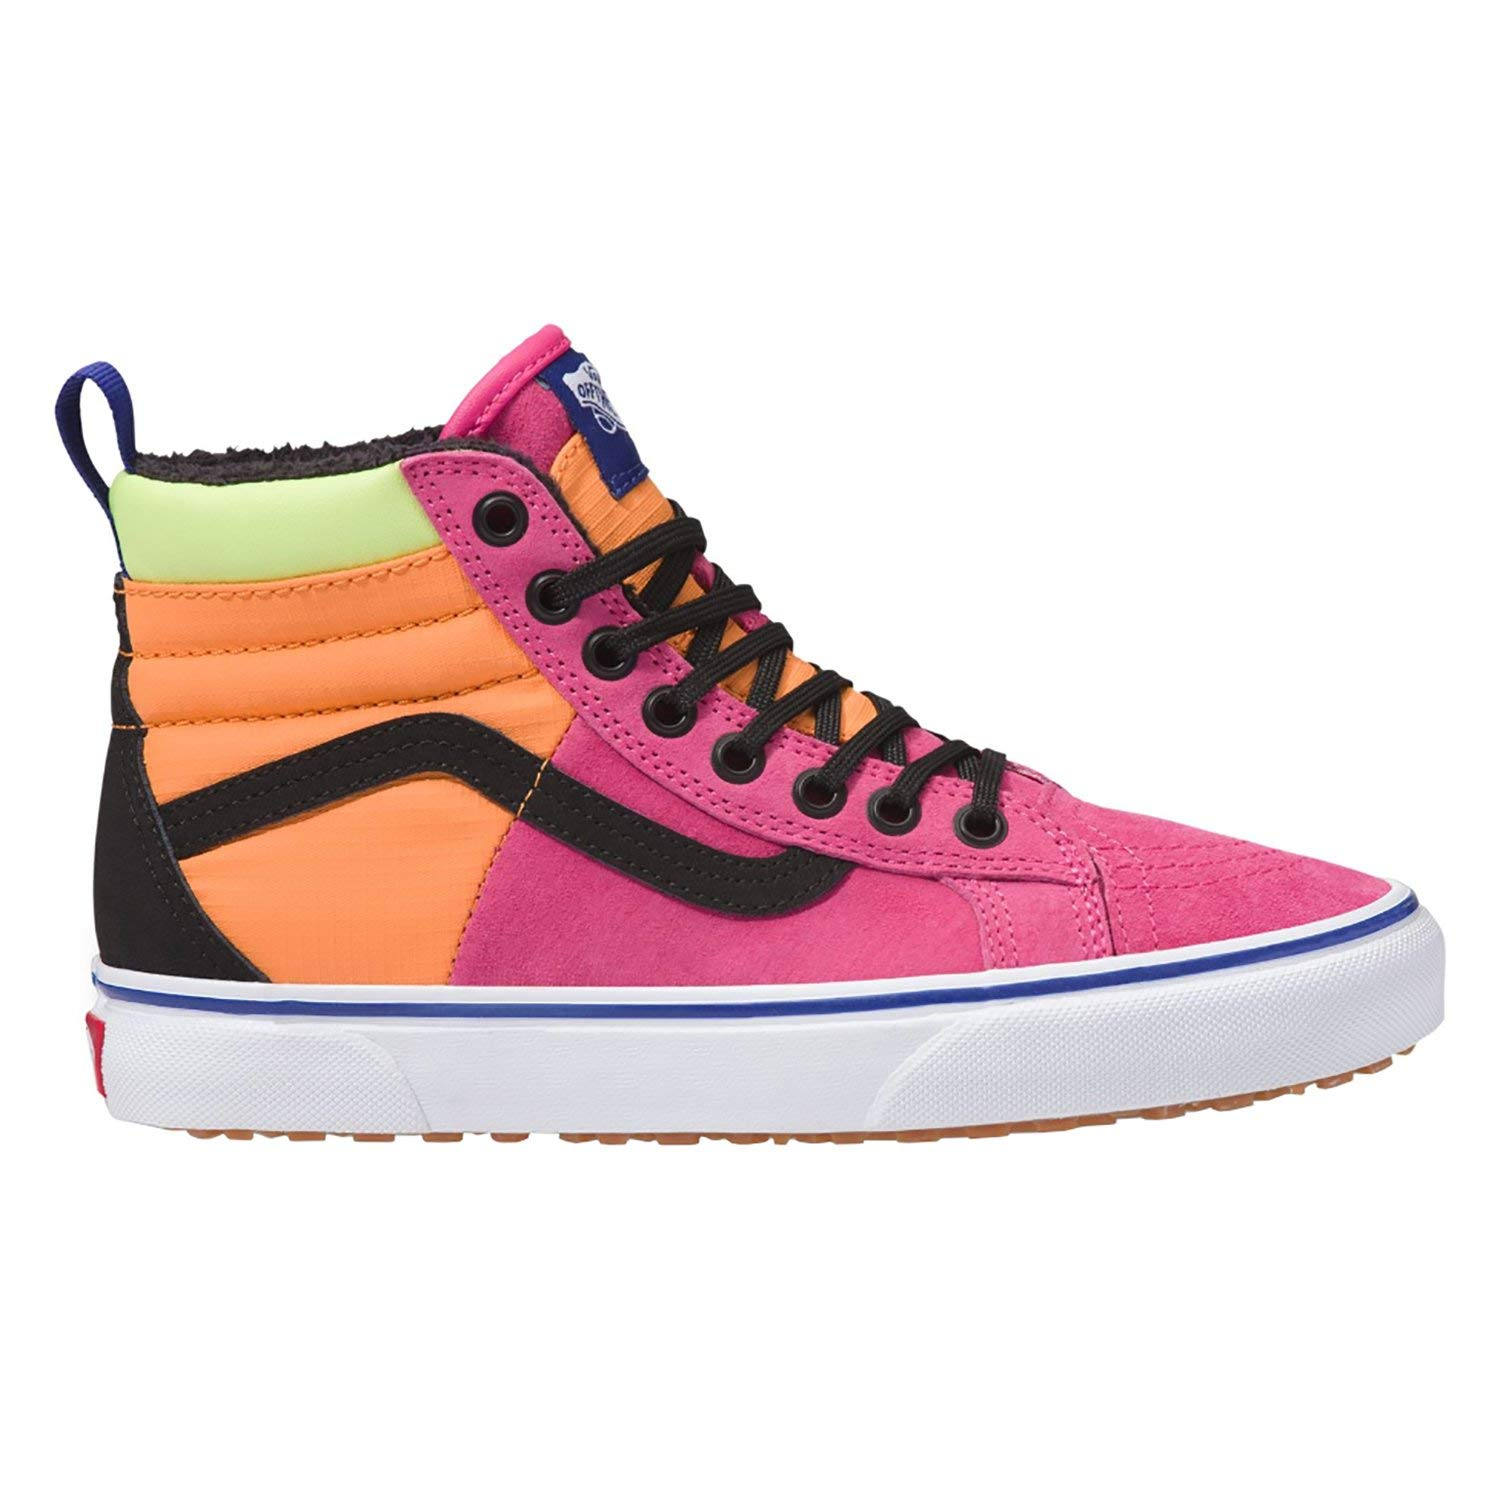 56dae458ed Galleon - Vans SK8 Hi 46 MTE DX Shoes 5.5 B(M) US Women   4 D(M) US Pink  Yarrow Tangerine Black